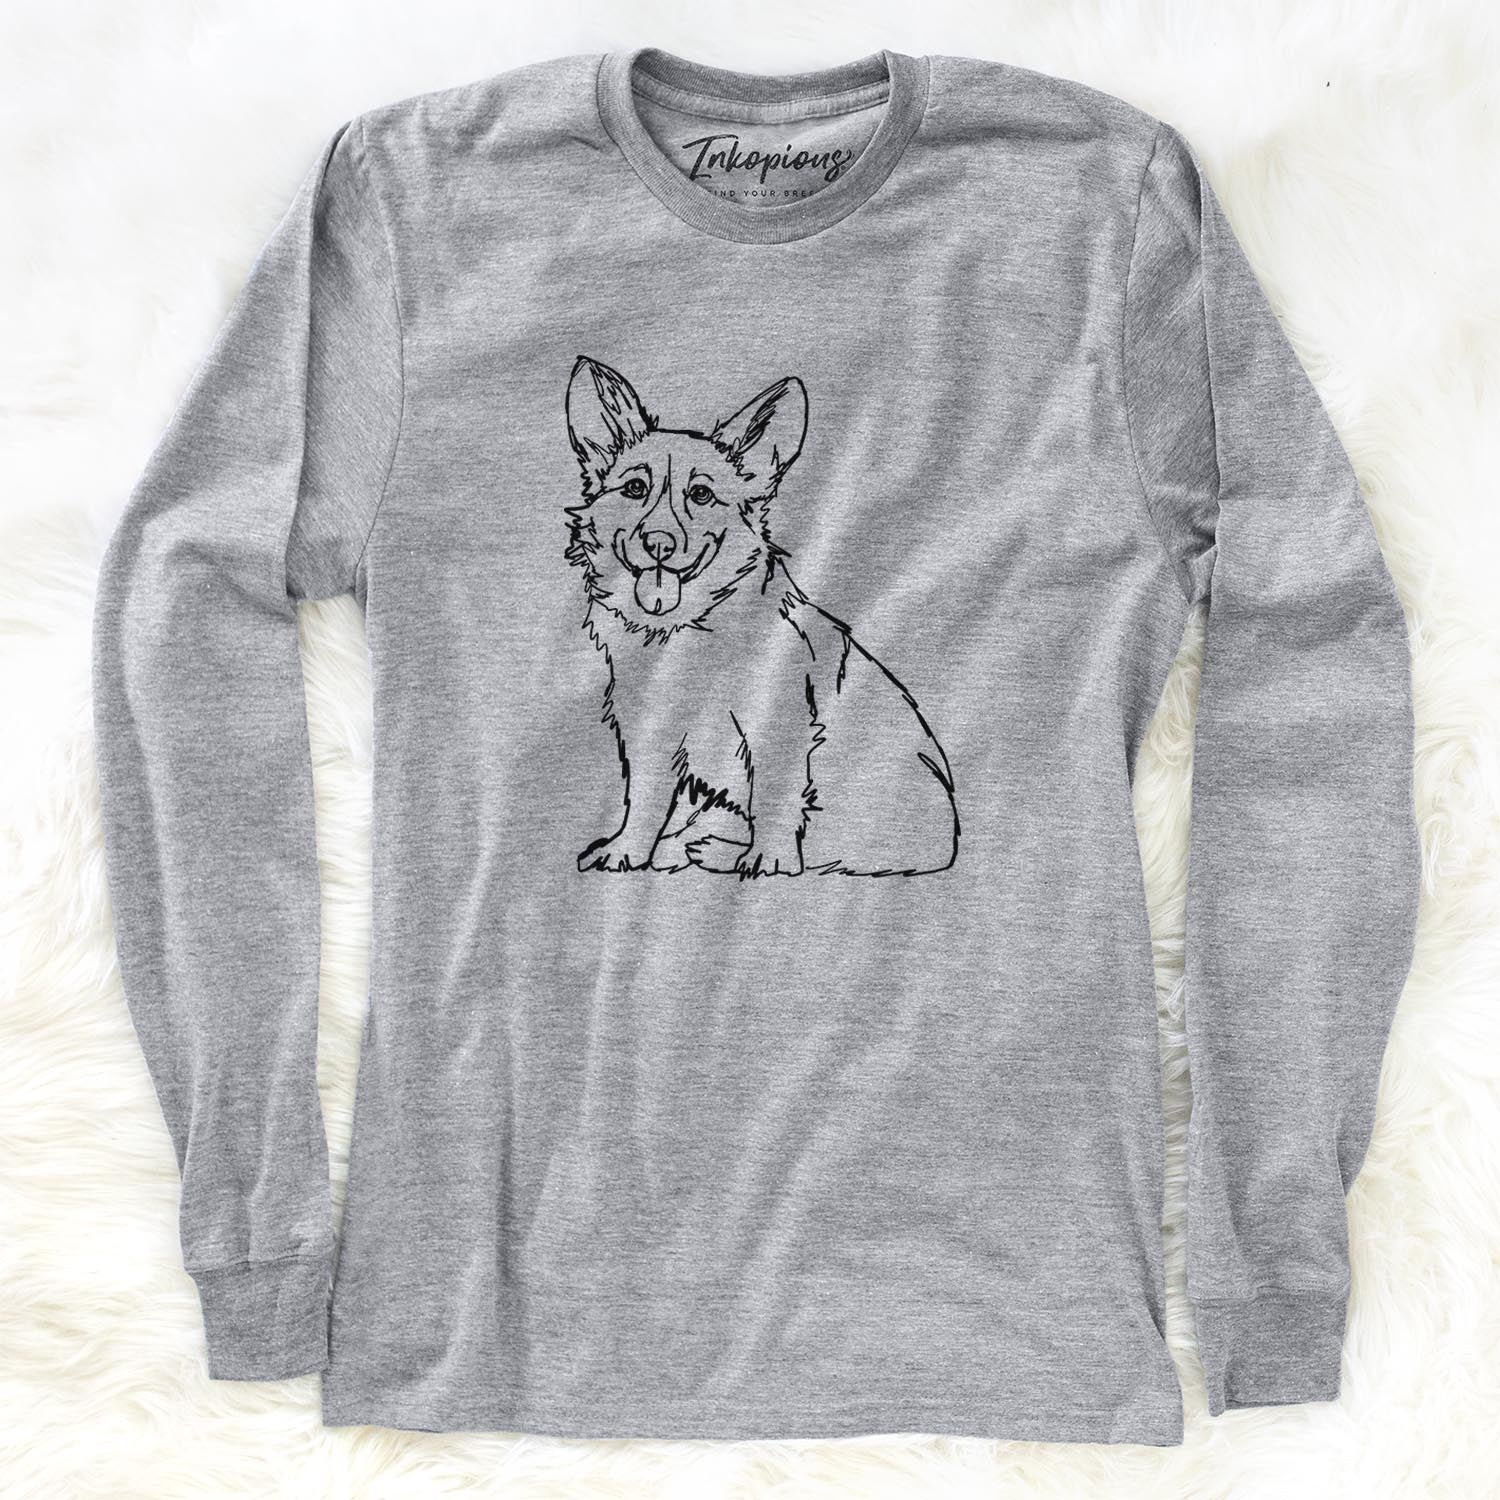 Doodled Corgi - Long Sleeve Crewneck